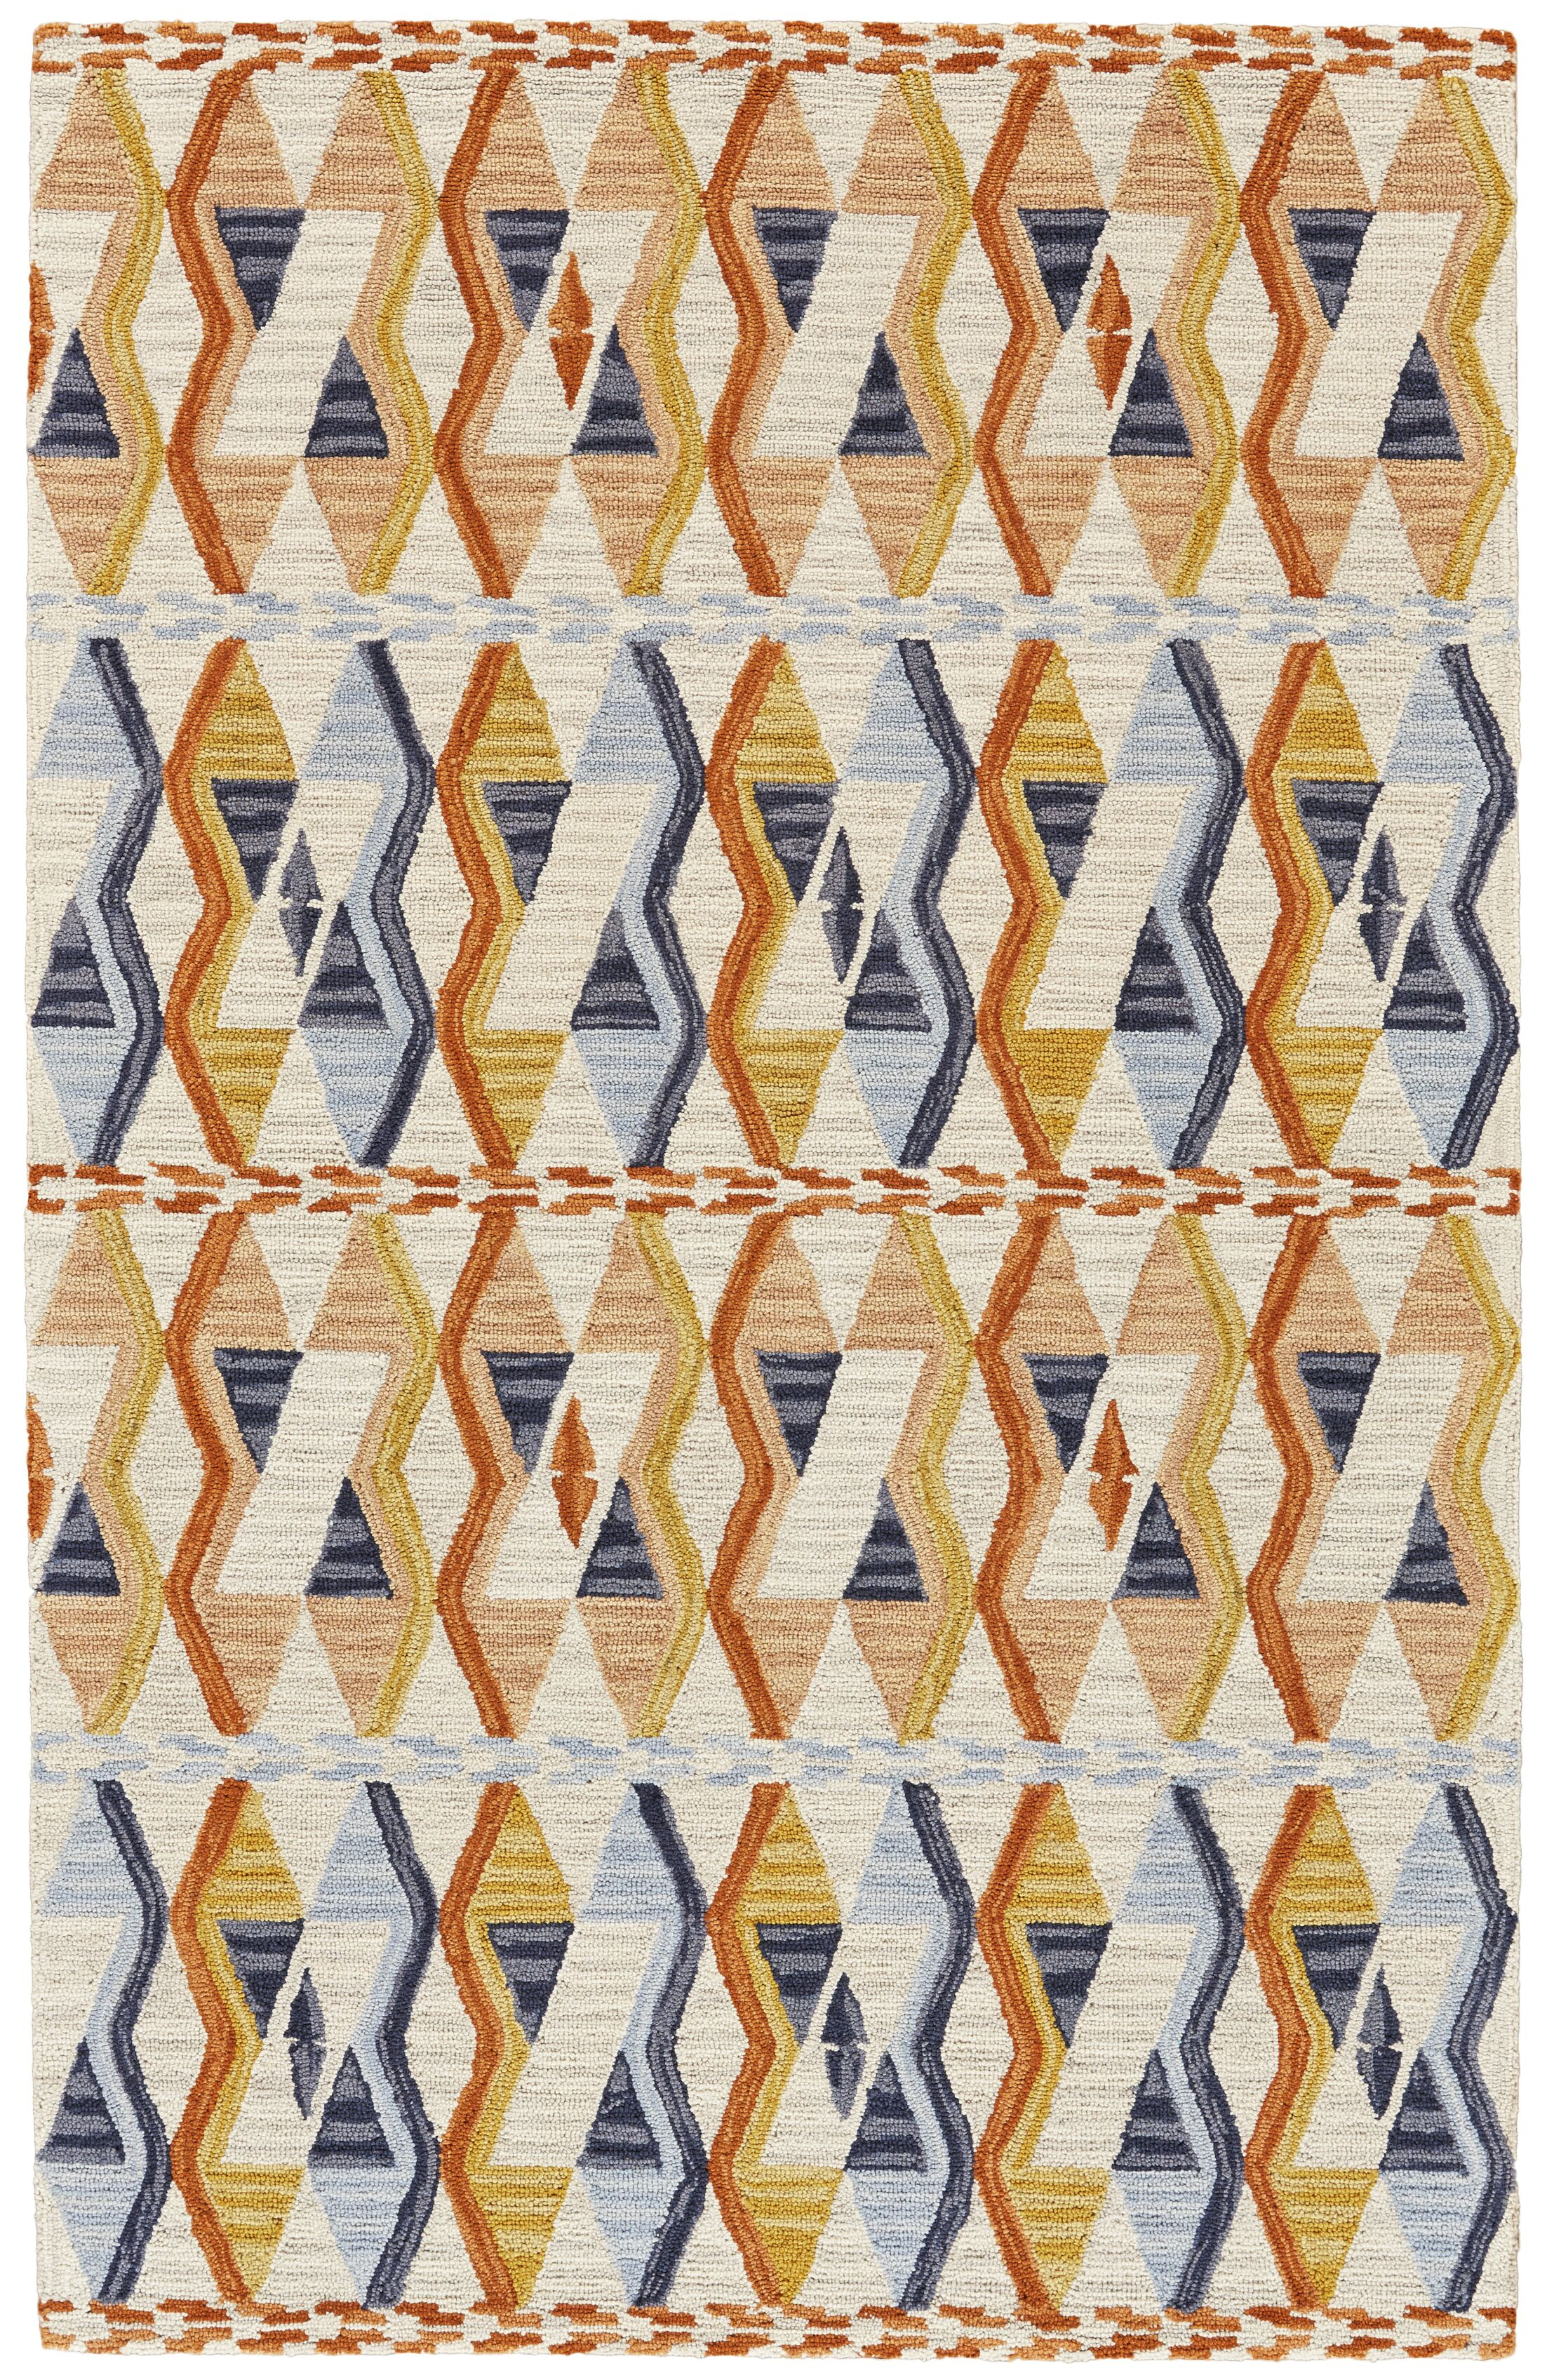 Willowick Hand-Tufted Orange/Blue Area Rug Rug Size: Rectangle 5' x 8'